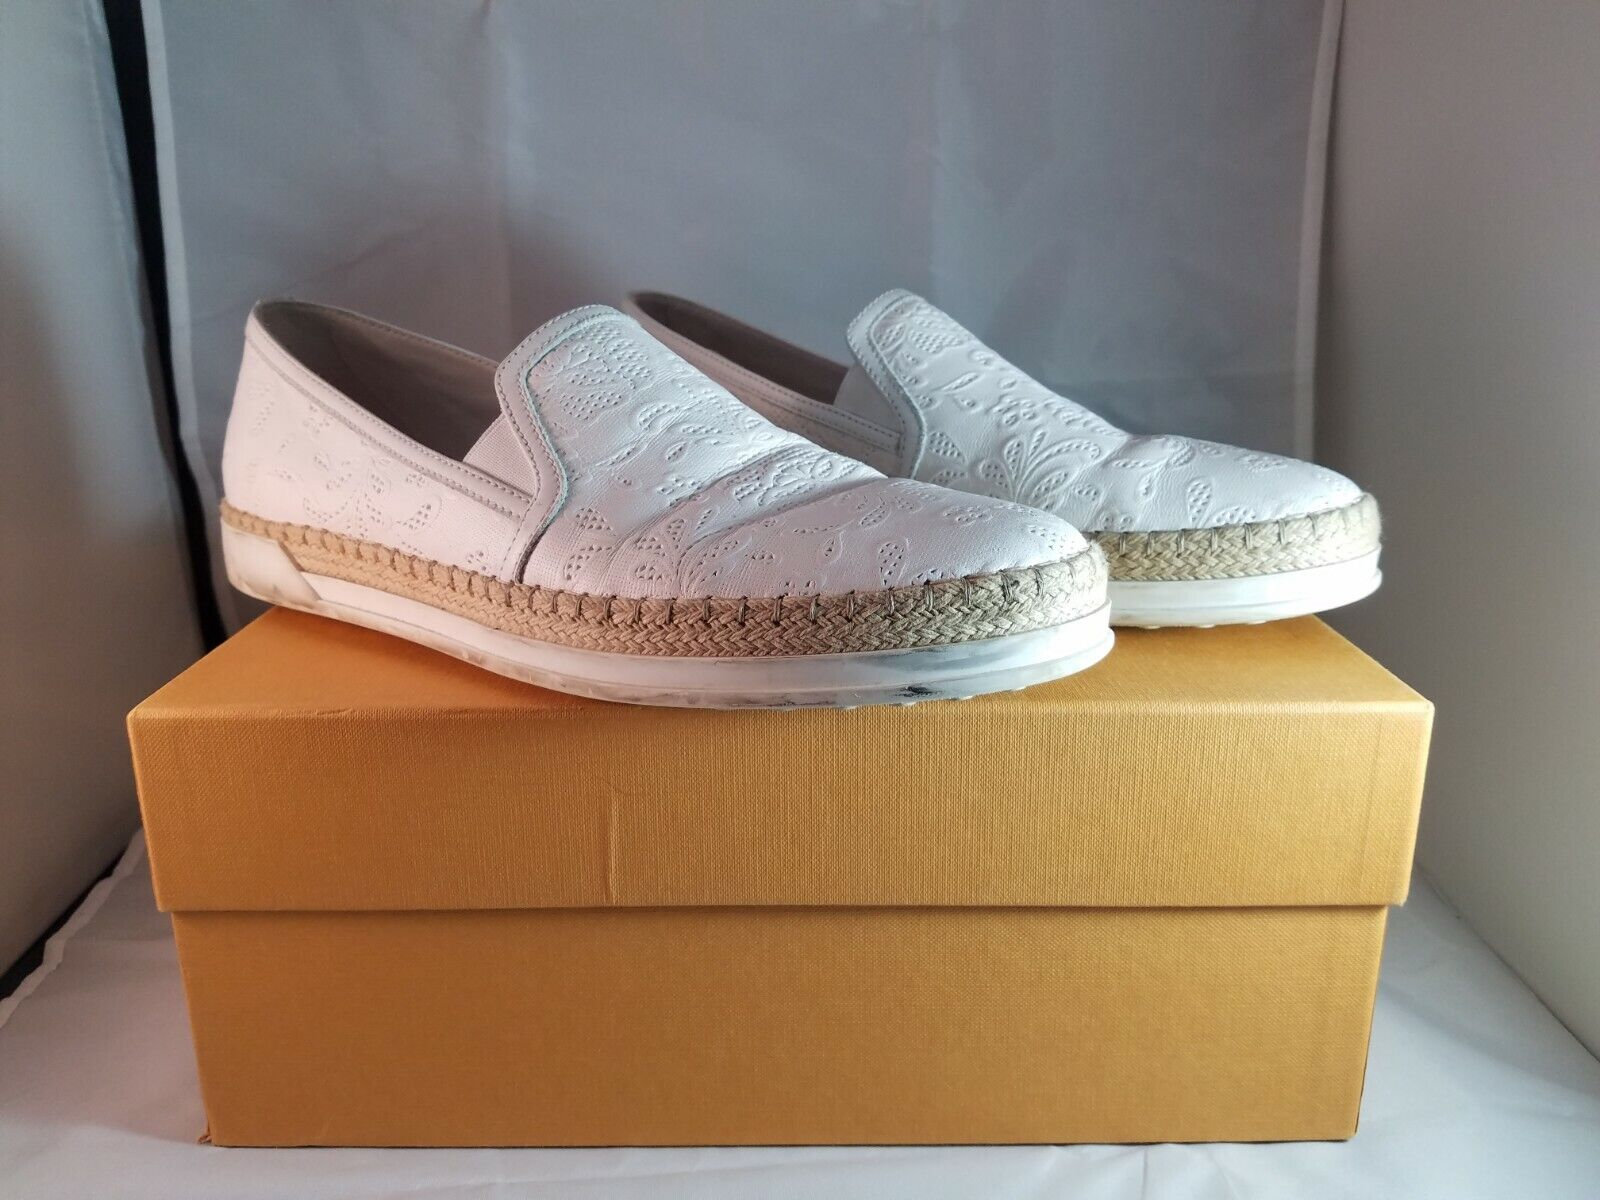 TODS White Womens Sneakers SIZE 38.5 Made in Italy With Box